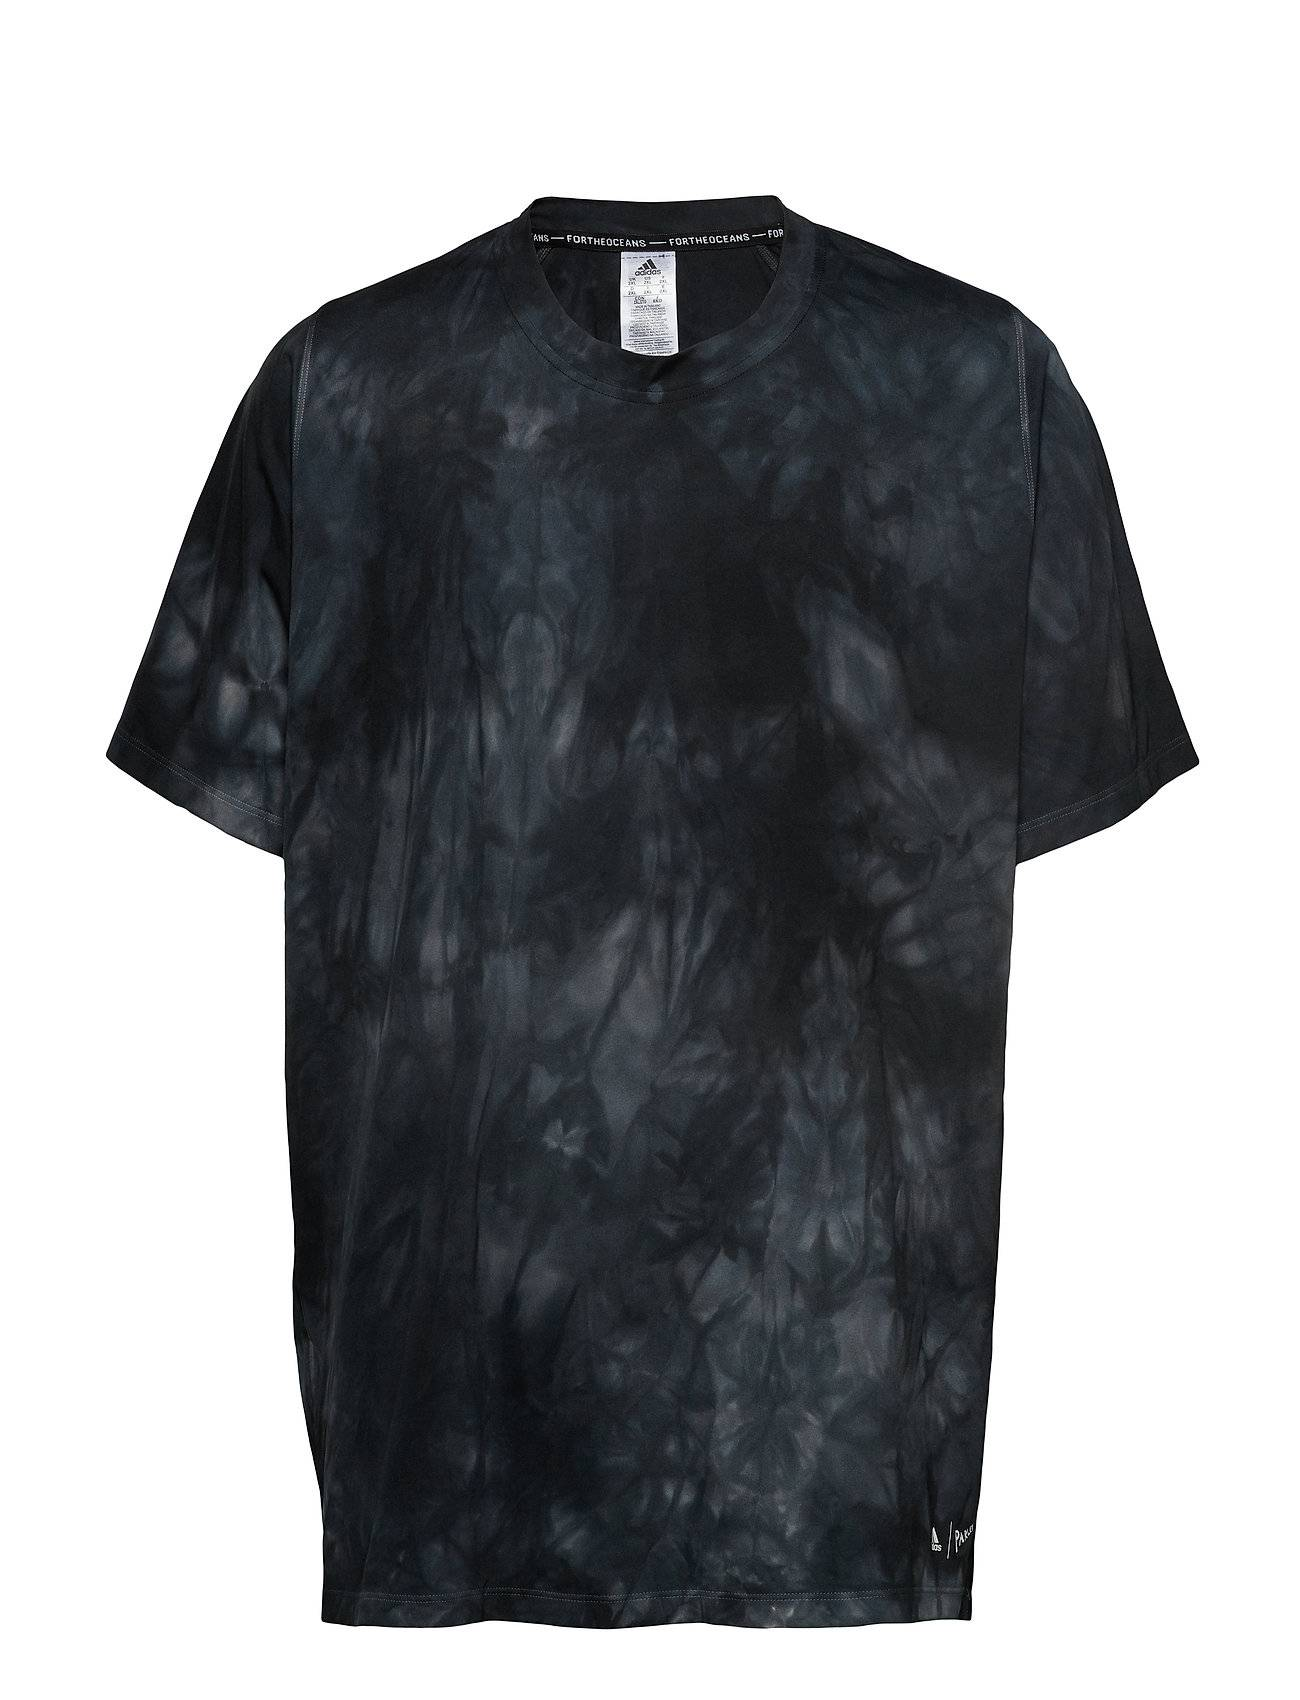 Image of adidas Performance Parley 3s Tee T-shirts Short-sleeved Musta